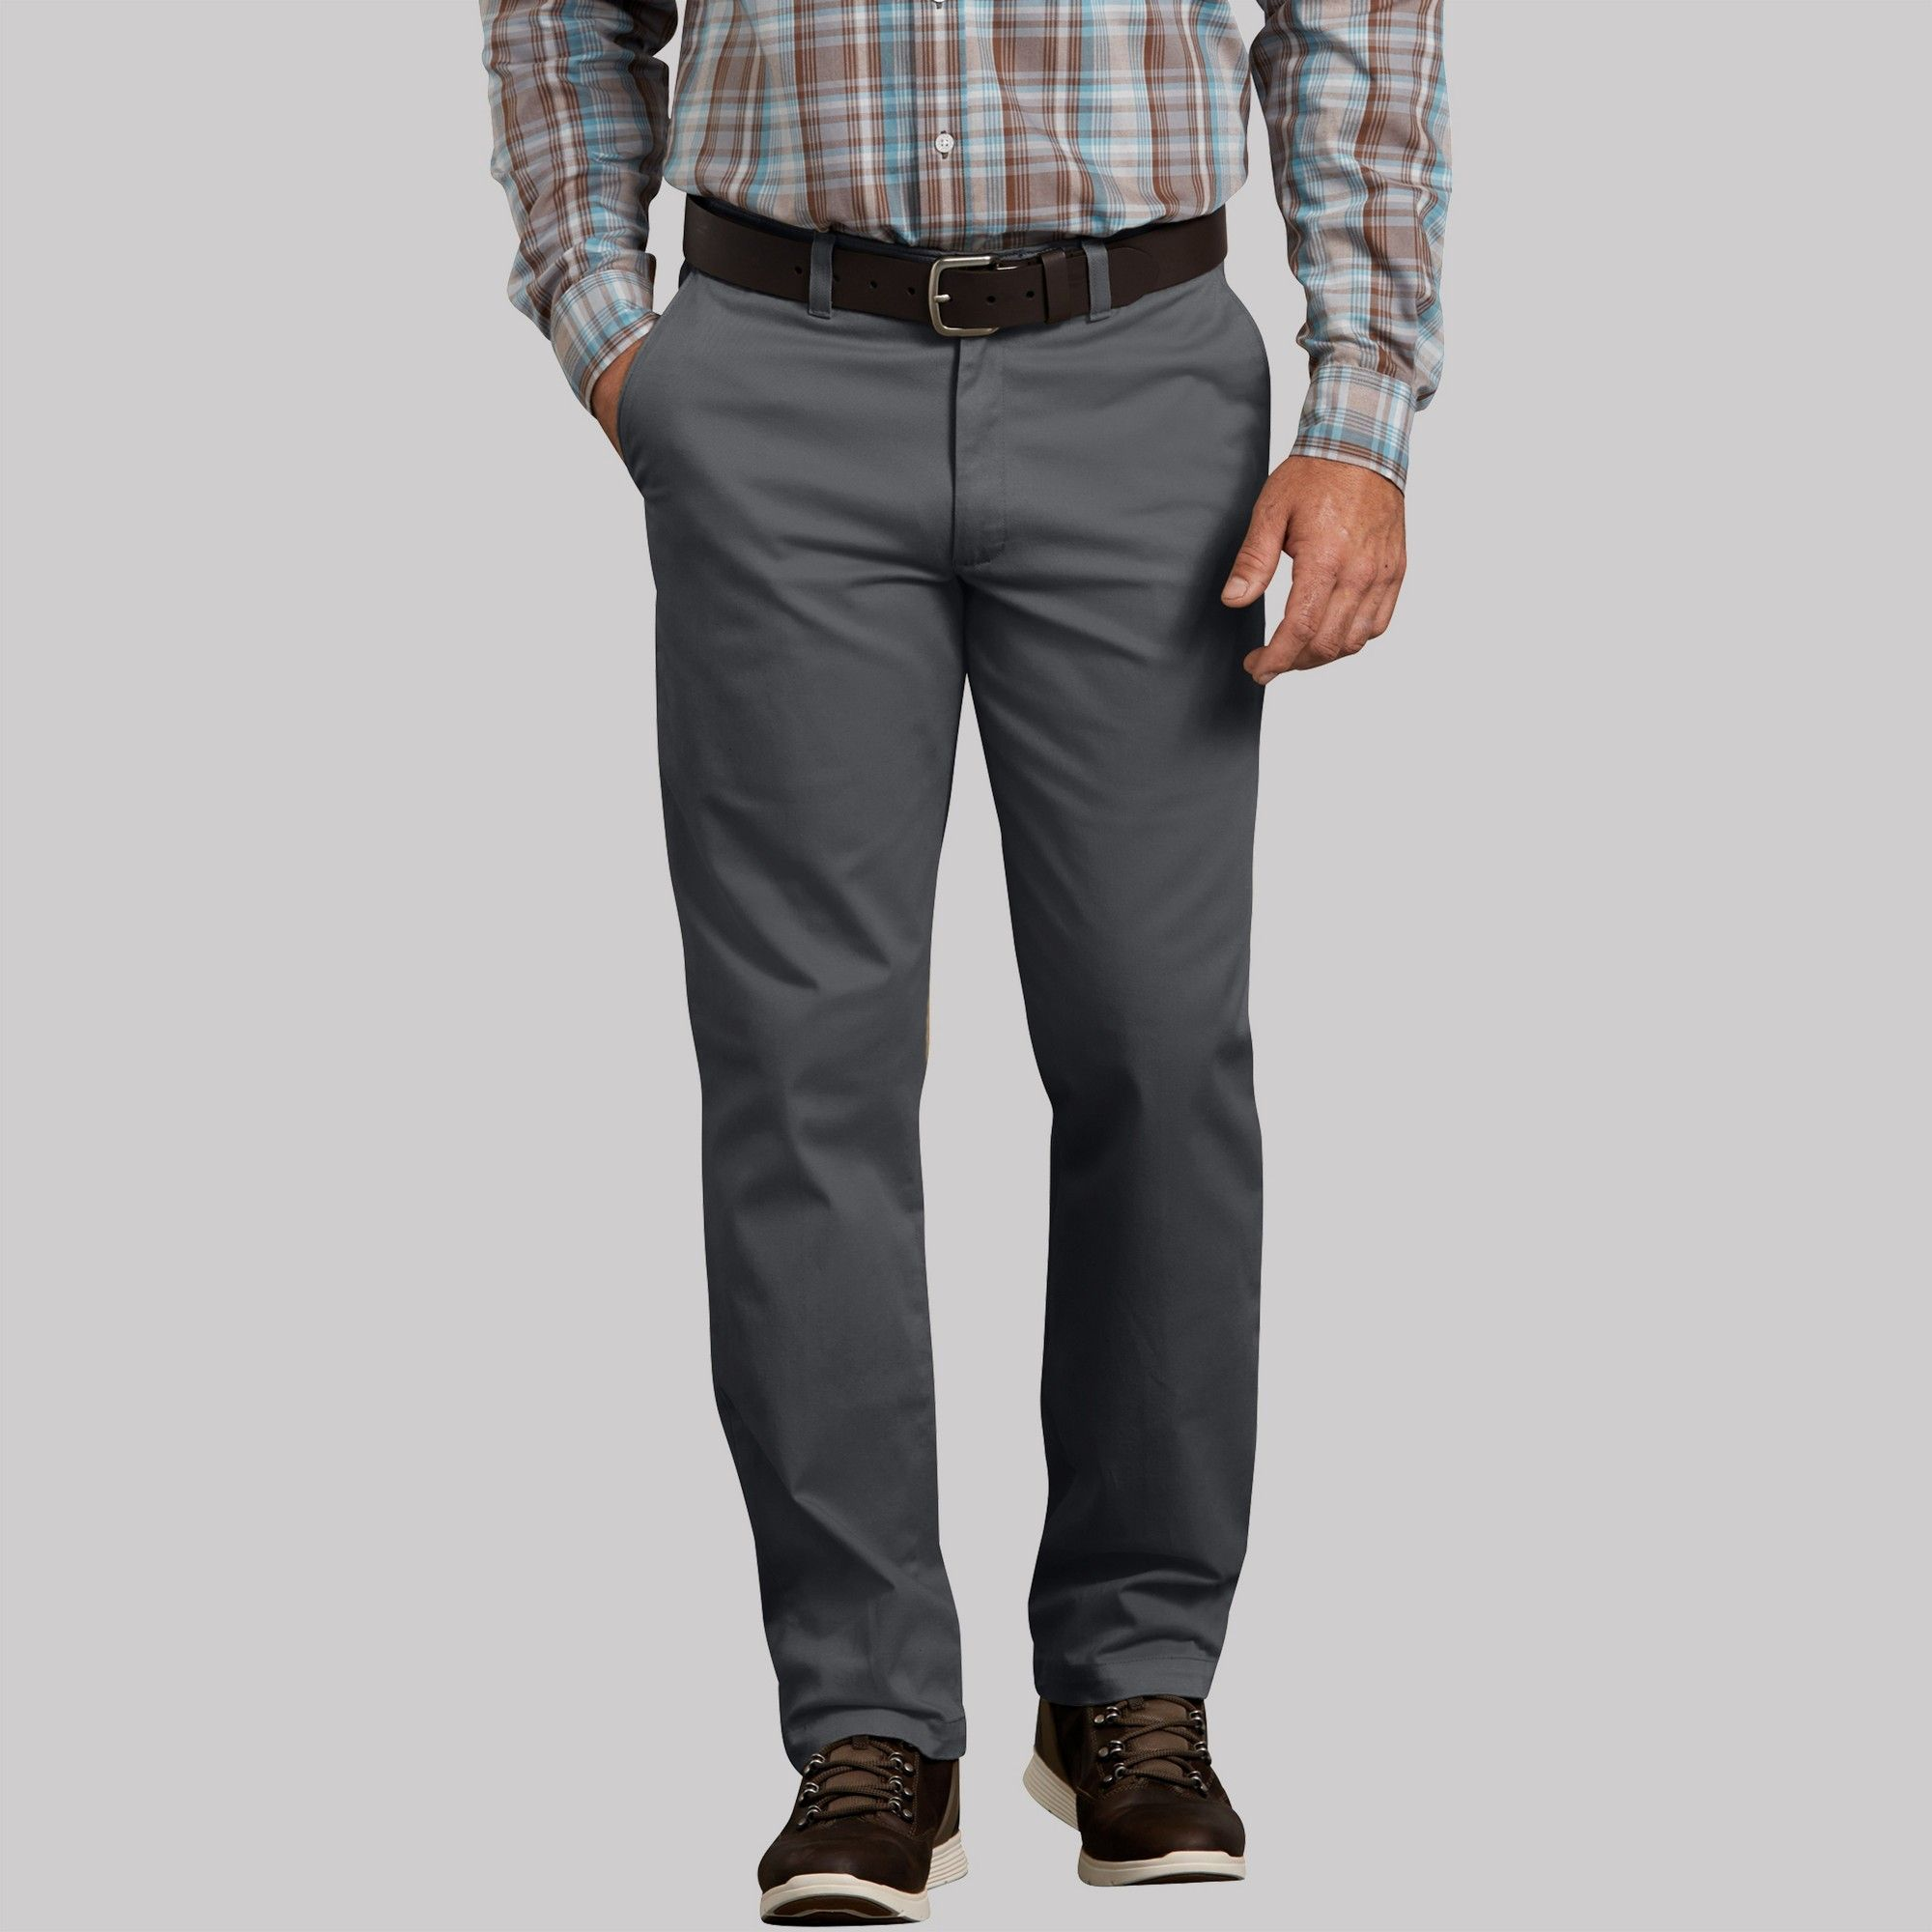 9b906754d65c Dickies Men's Taper Chino Pants - Gray 34x32 in 2019 | Products ...